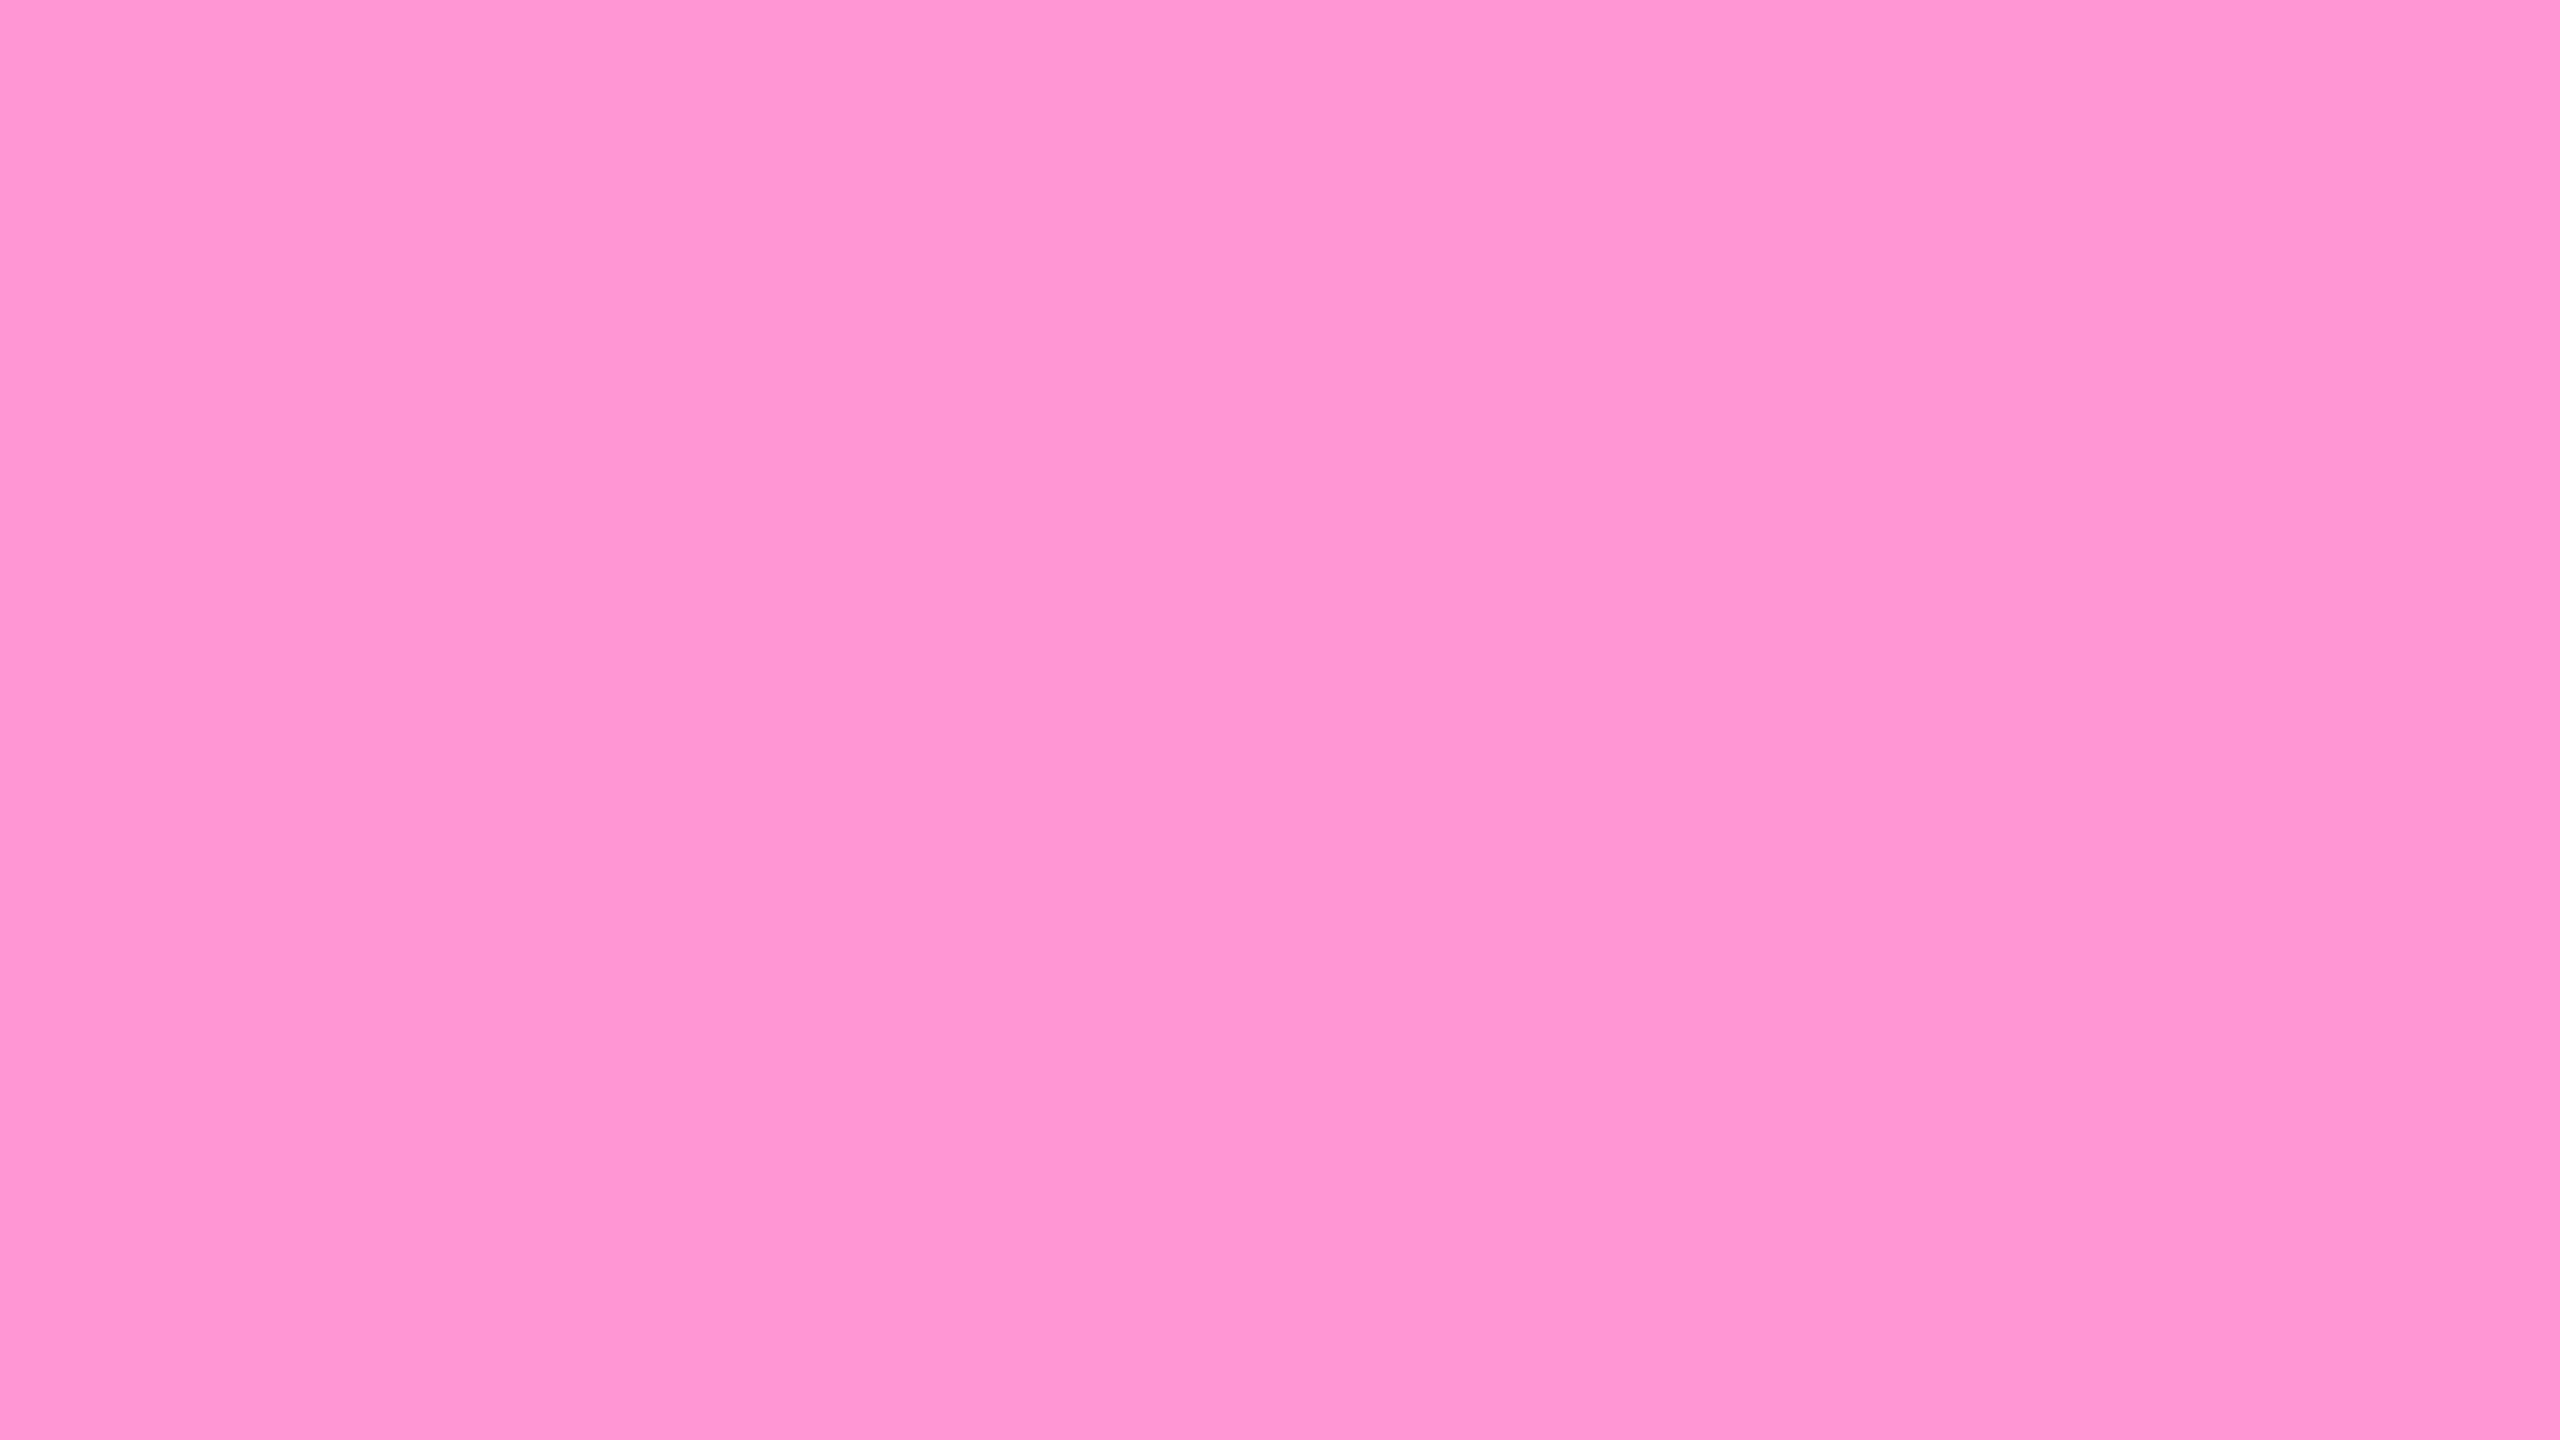 light pink star wallpaper - photo #30